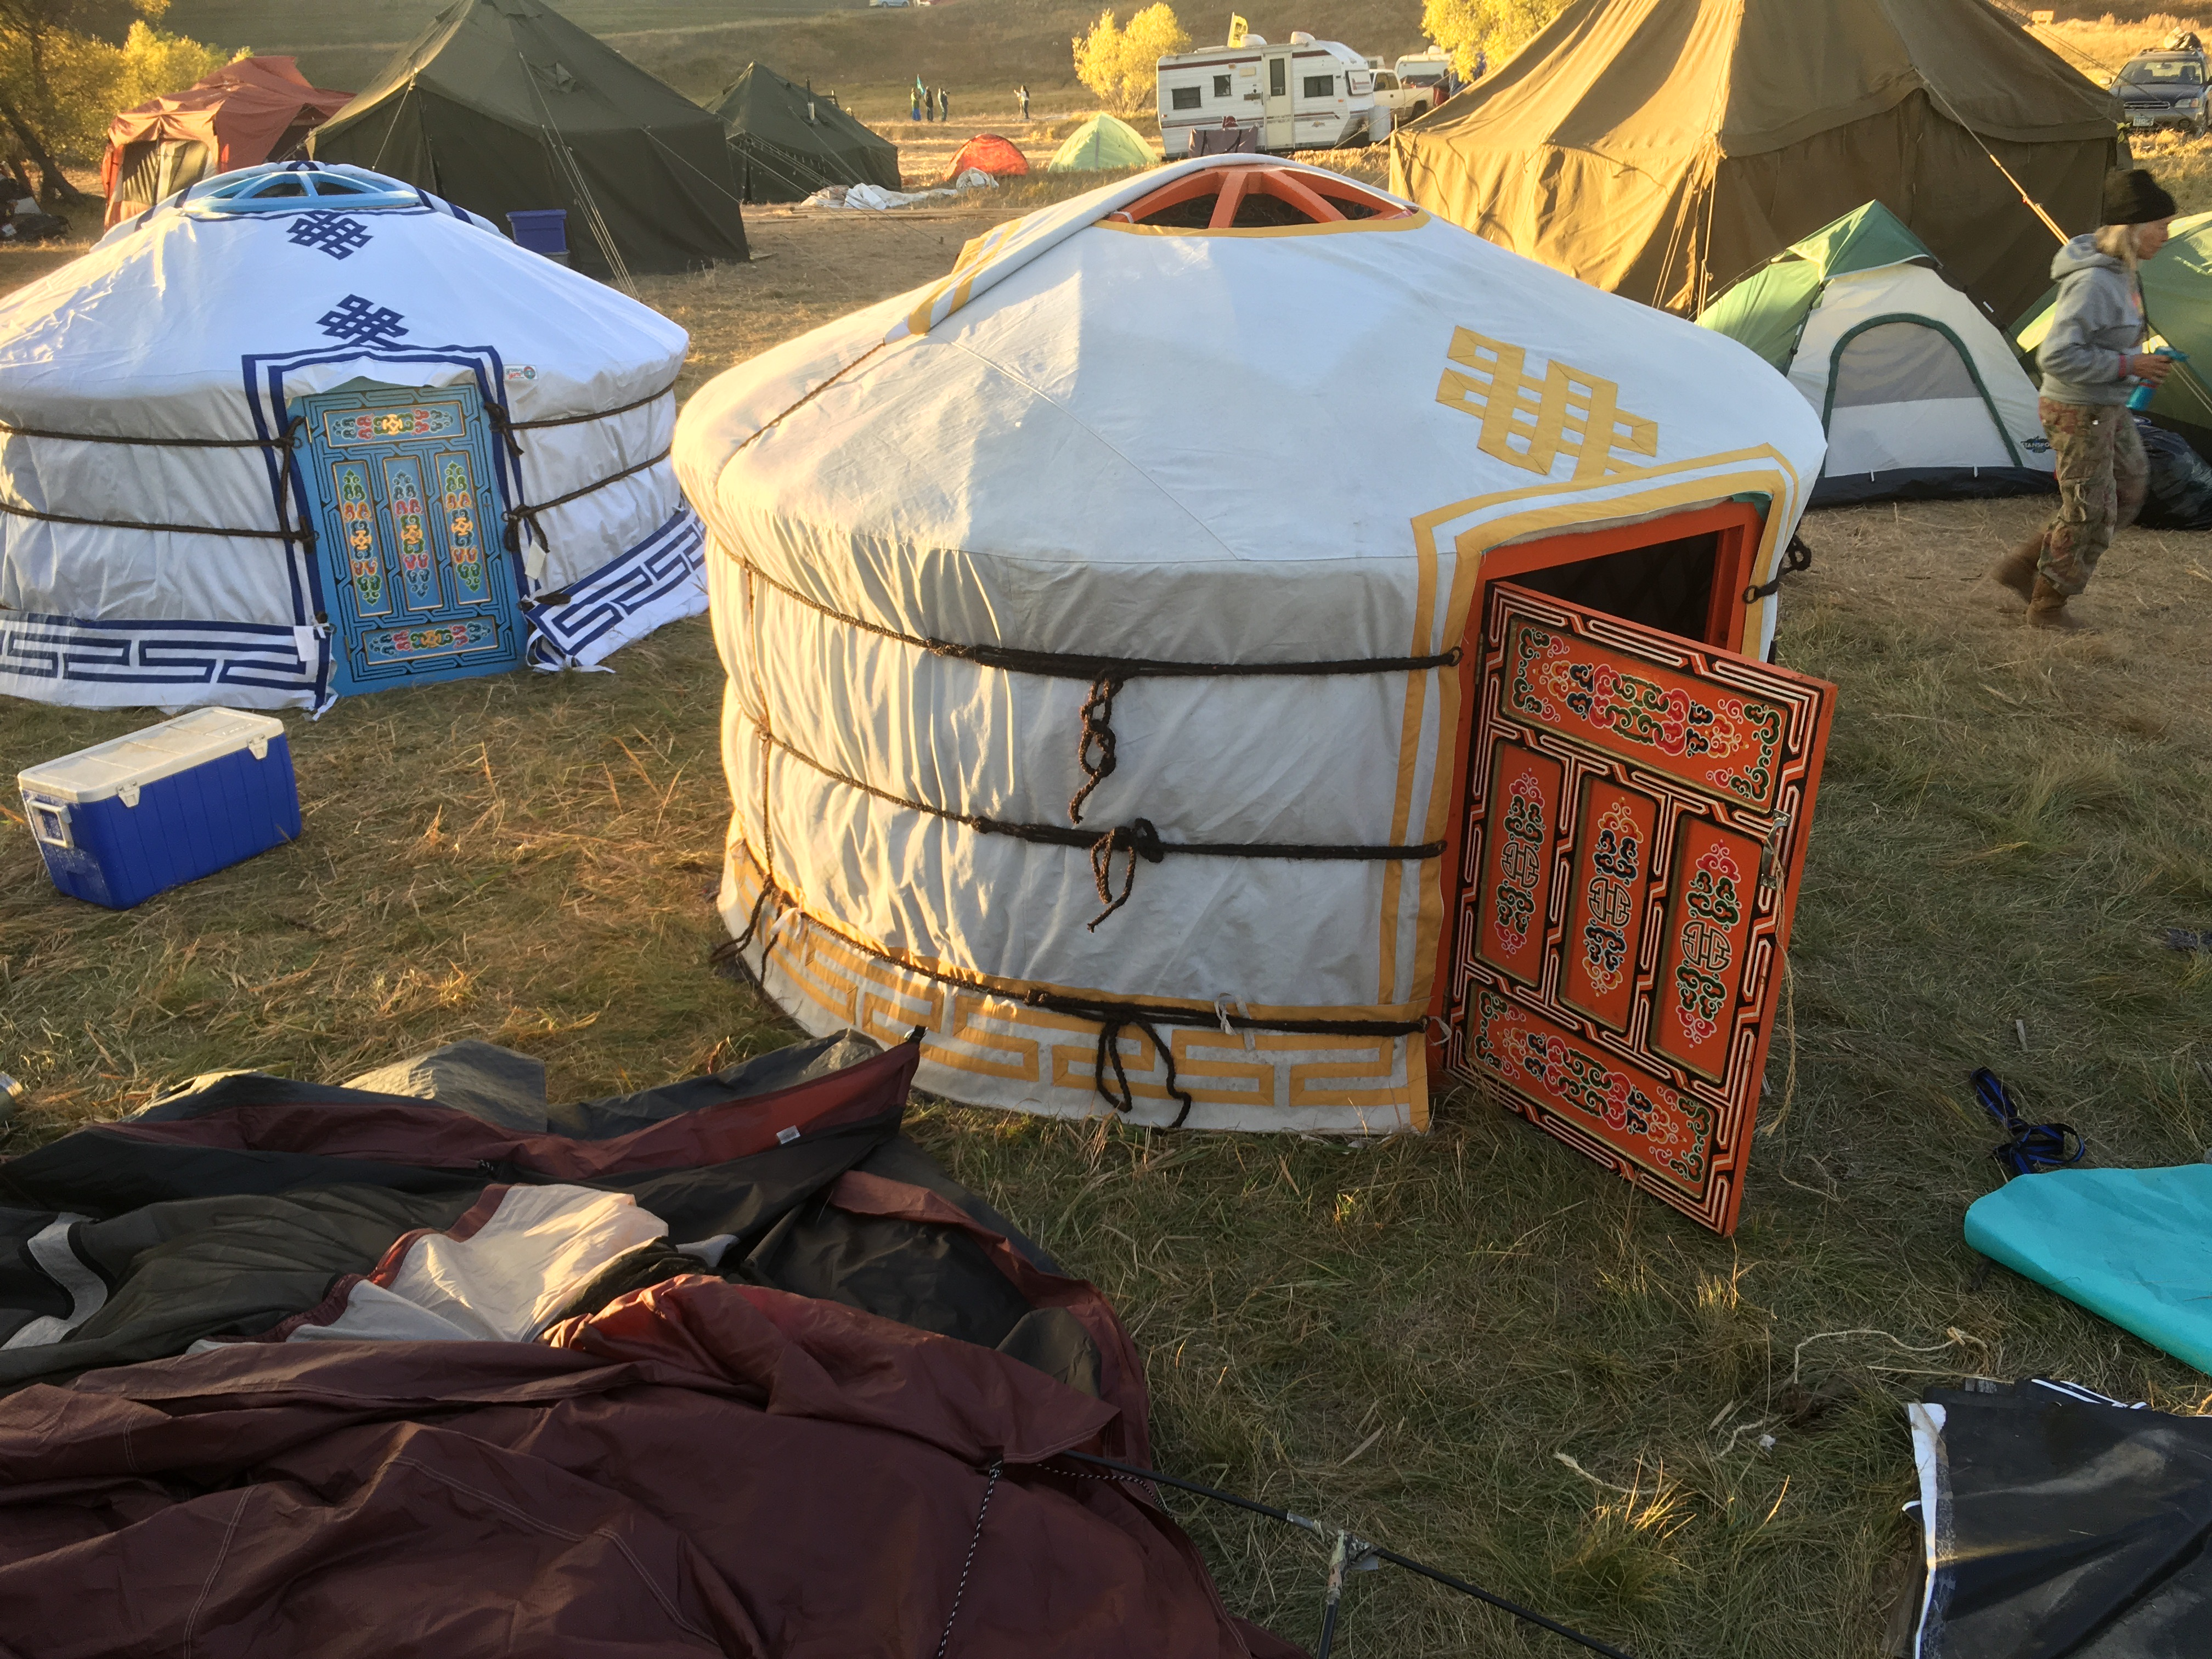 small yurts set up as tents outdoors